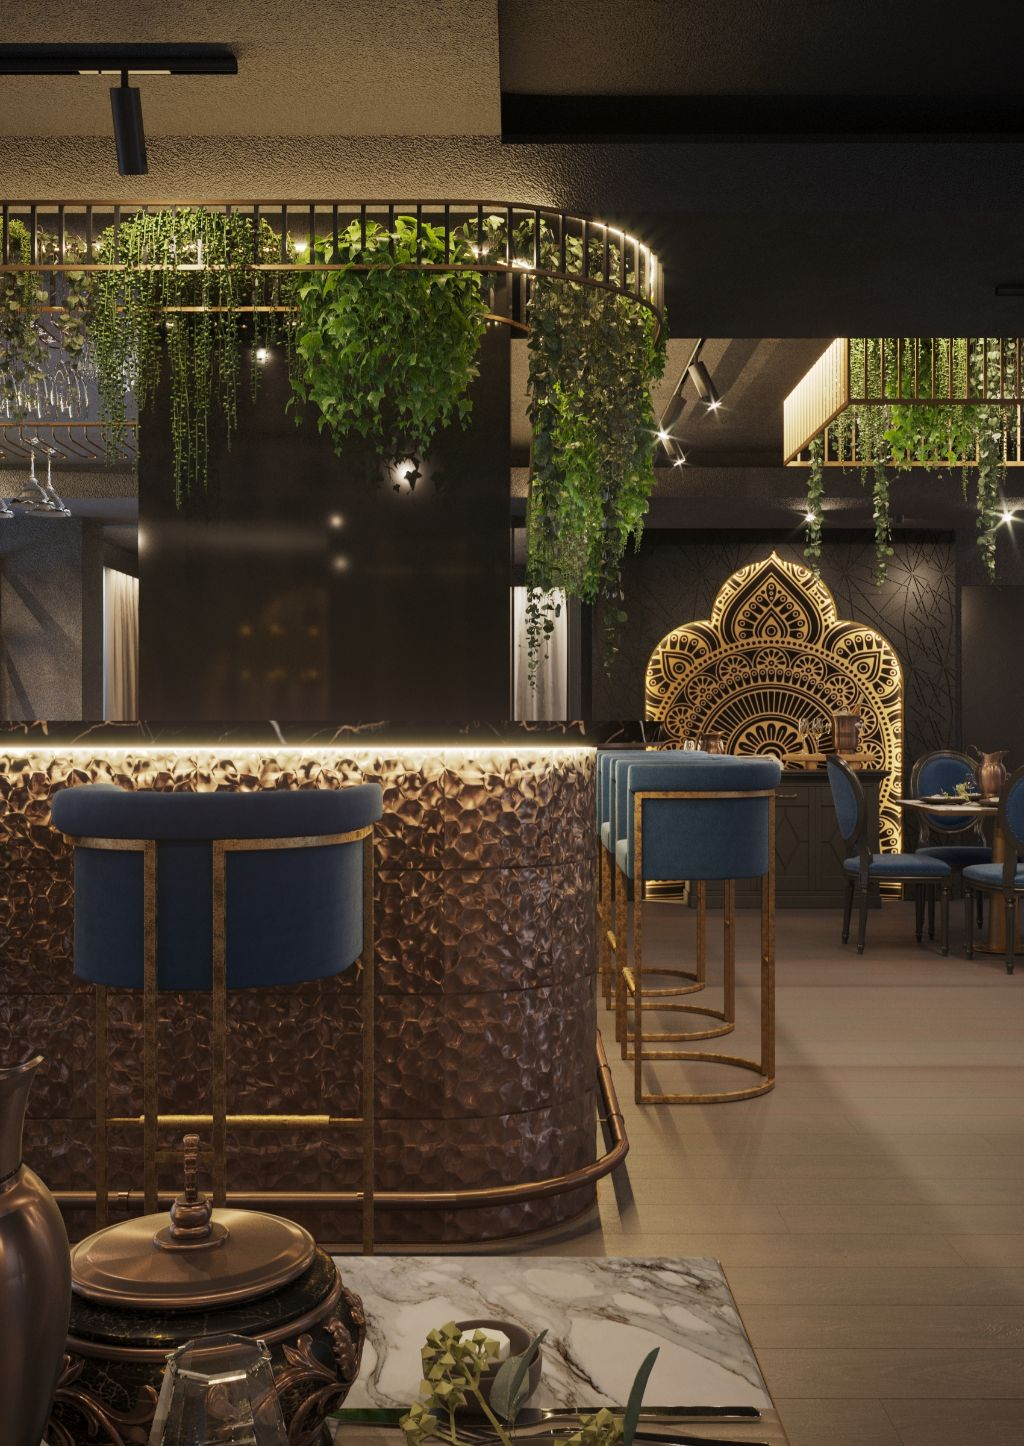 MARHABA LEBANESE RESTAURANT – the modern reinterpretation of the East